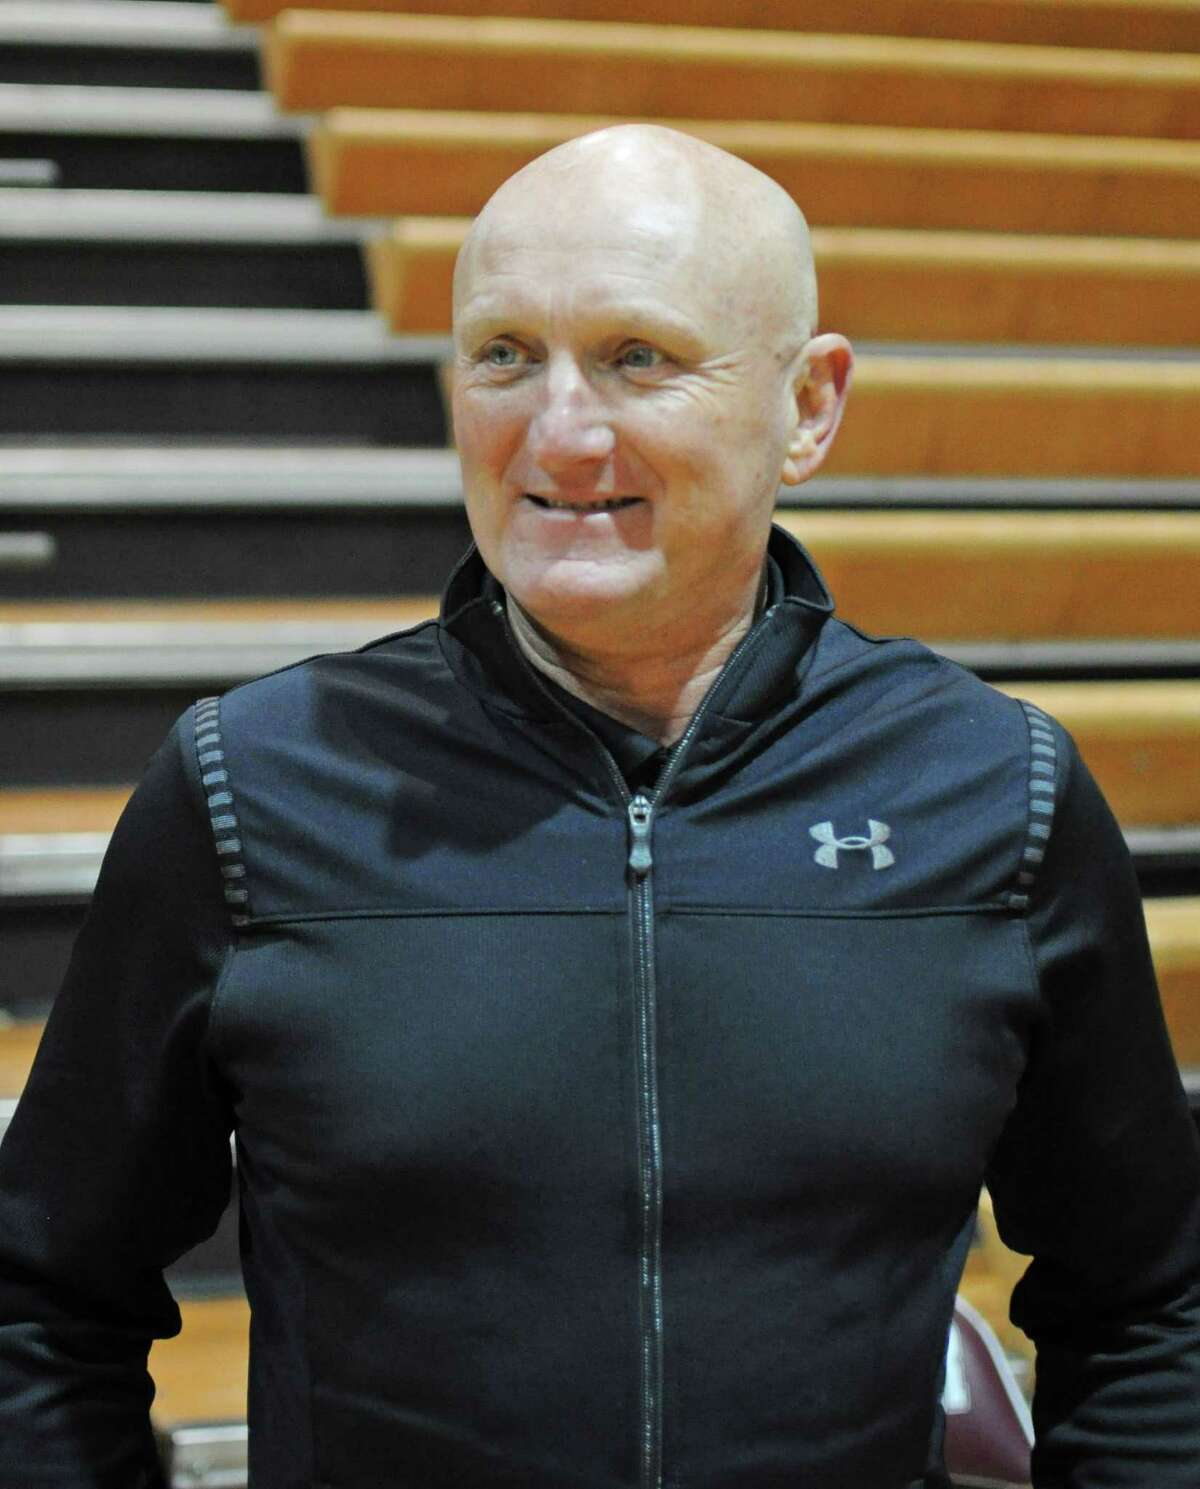 Pearland?s Steve Buckelew, who is in his 18th season with the Oilers, notched his 600th win as a high school boys basketball coach in a 60-48 triumph on Friday at Dobie.